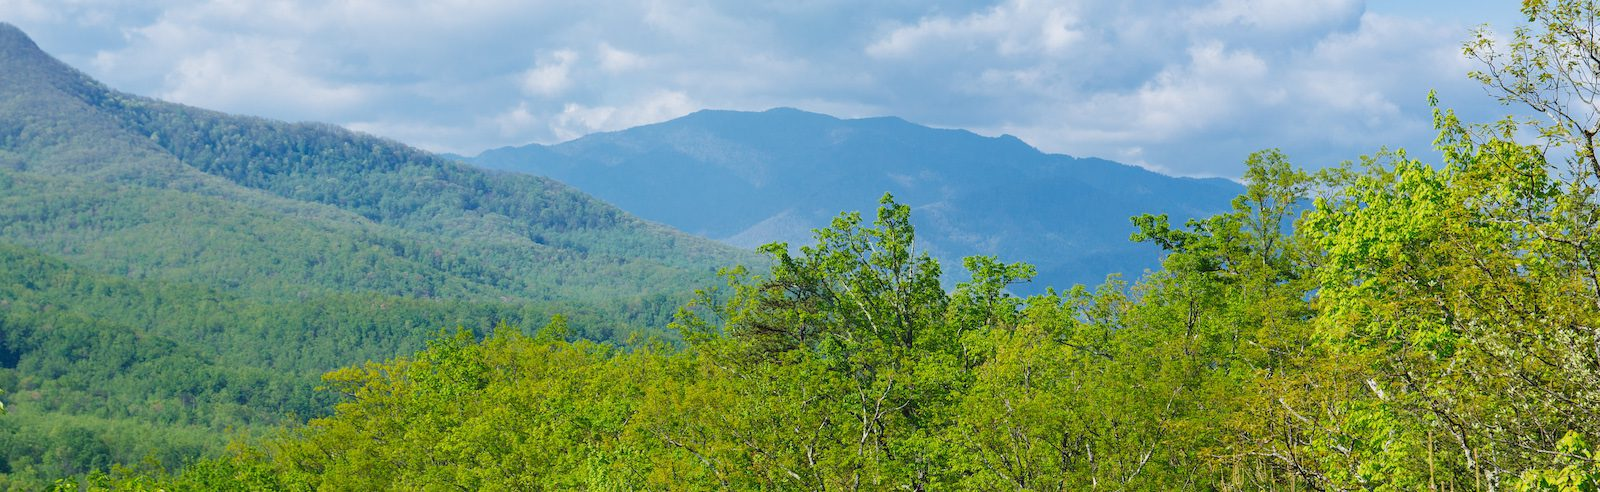 Top 5 Smoky Mountain Hikes You Have to Try